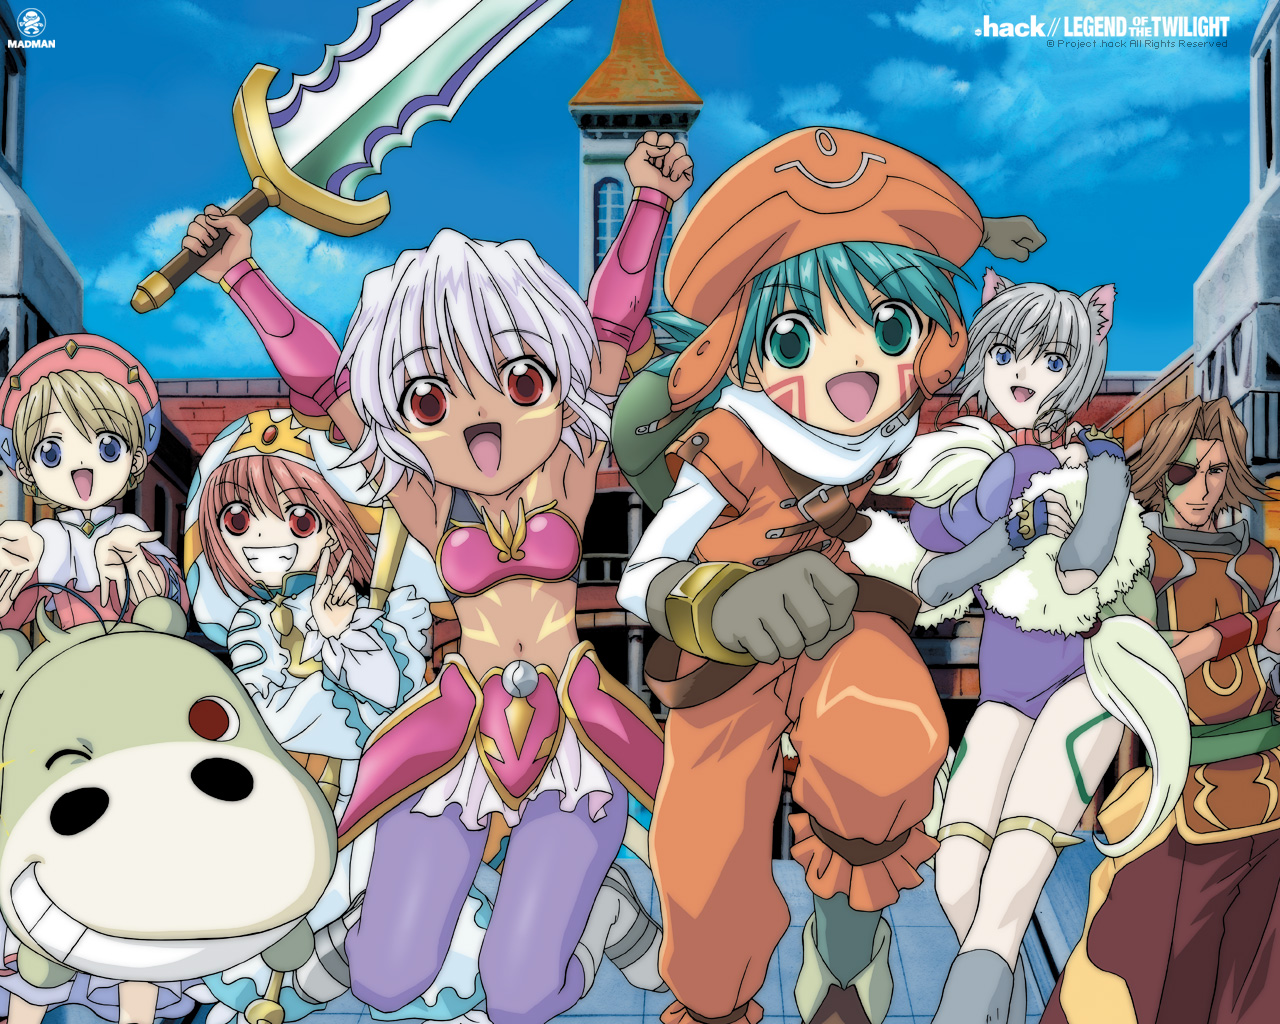 Hack Legend of The Twilight Anime Legends Complete Collection Movie HD free download 720p